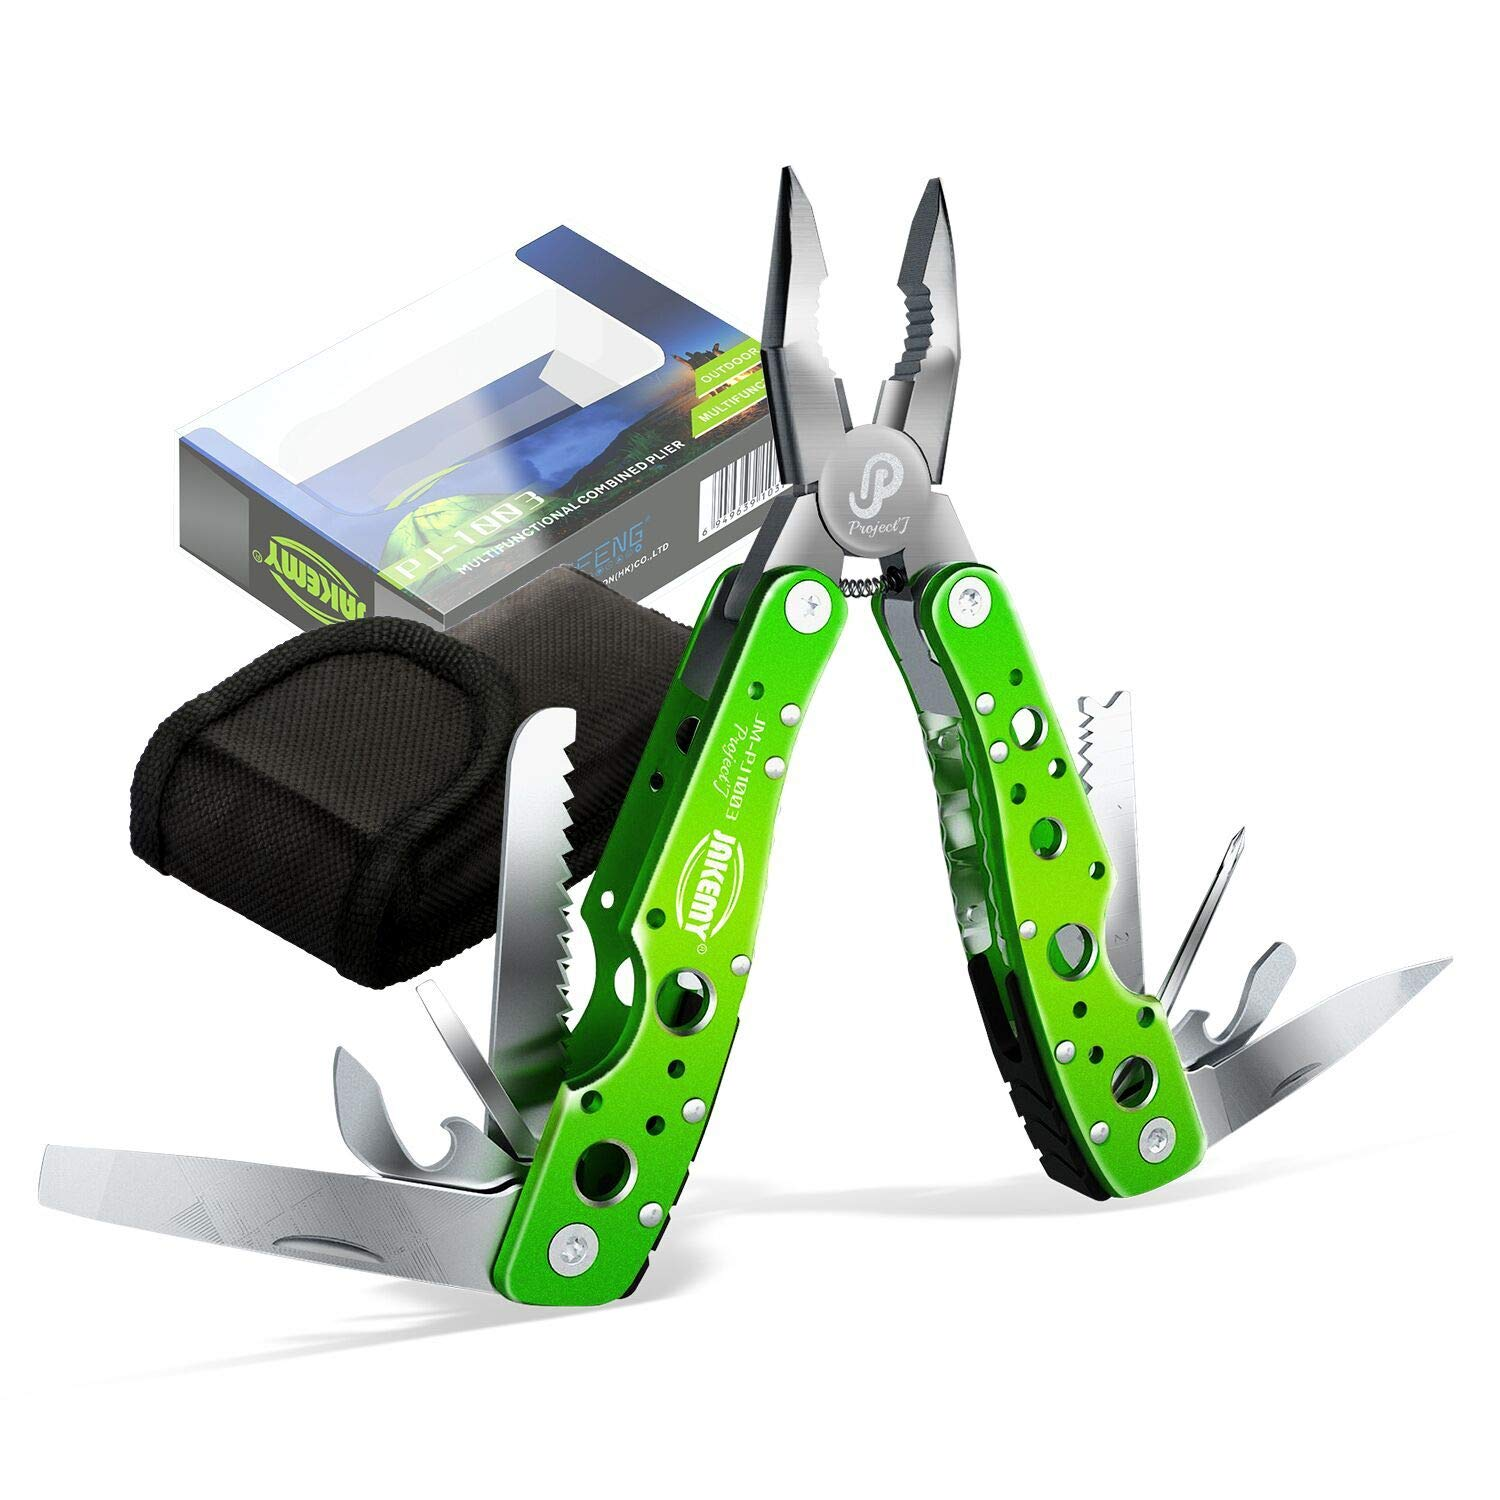 Multitool Portable Screwdriver Stainless Survival